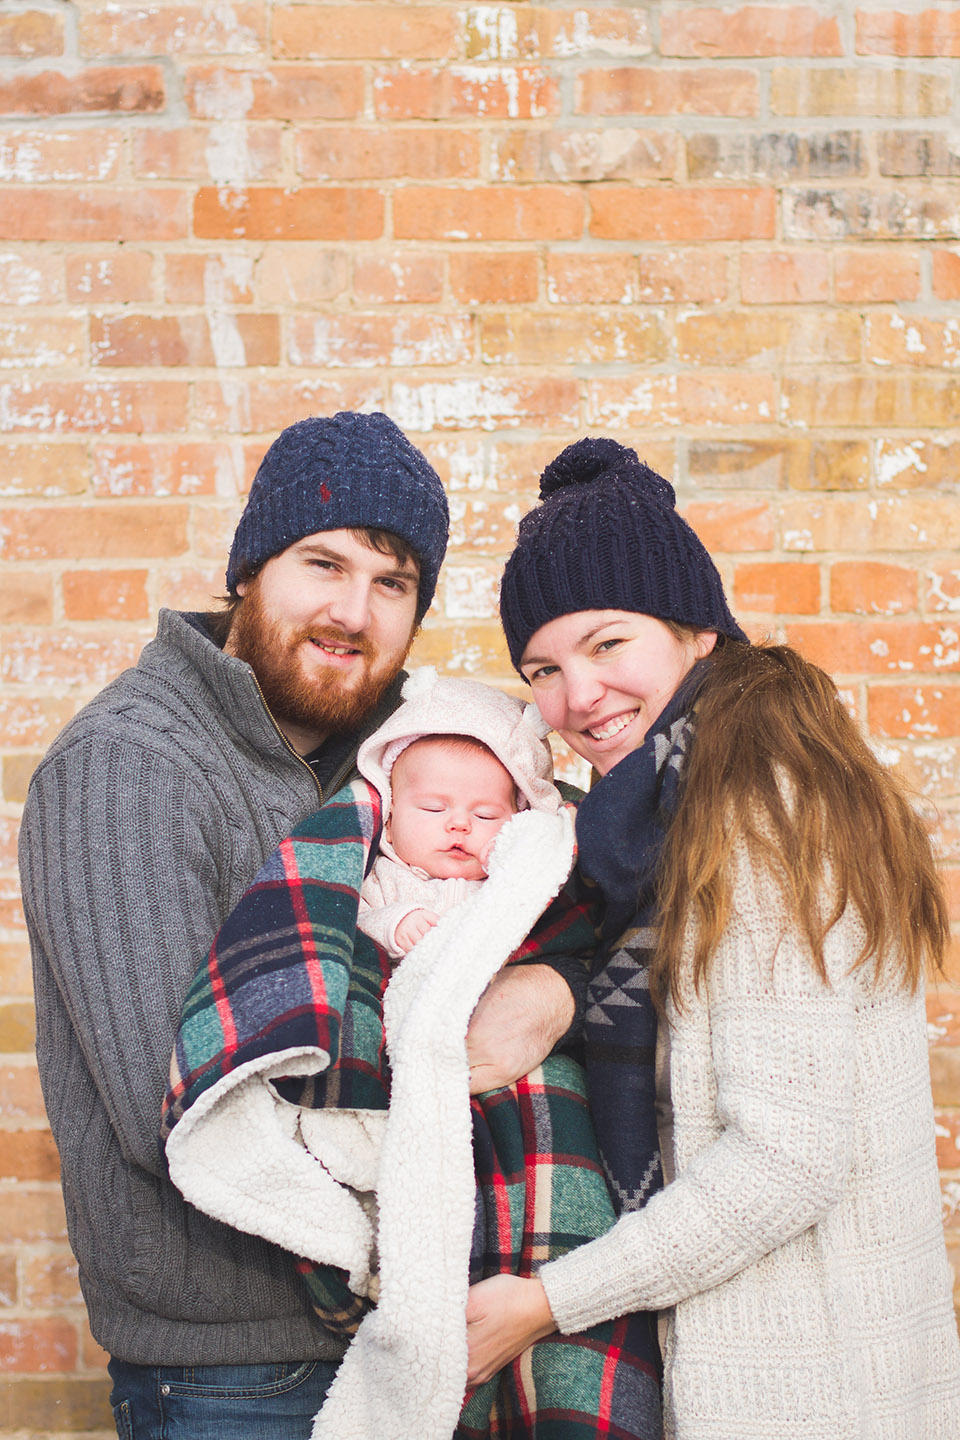 Family portraits taken during winter in Orangeville by Frank Myrland Photography